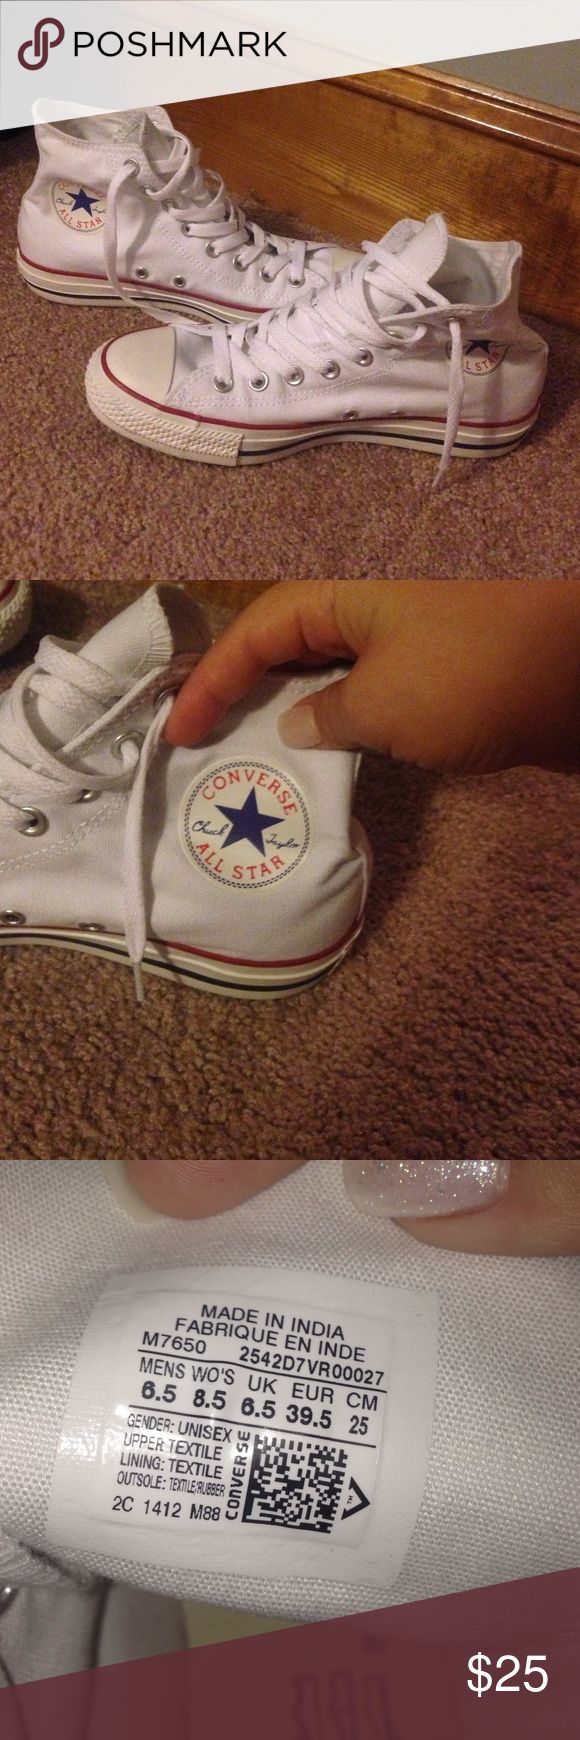 Chuck Taylor Converse All Stars White Chuck Taylor High Tops. Perfect condition. Only wore once. Size 8.5 in women's. Converse Shoes Sneakers